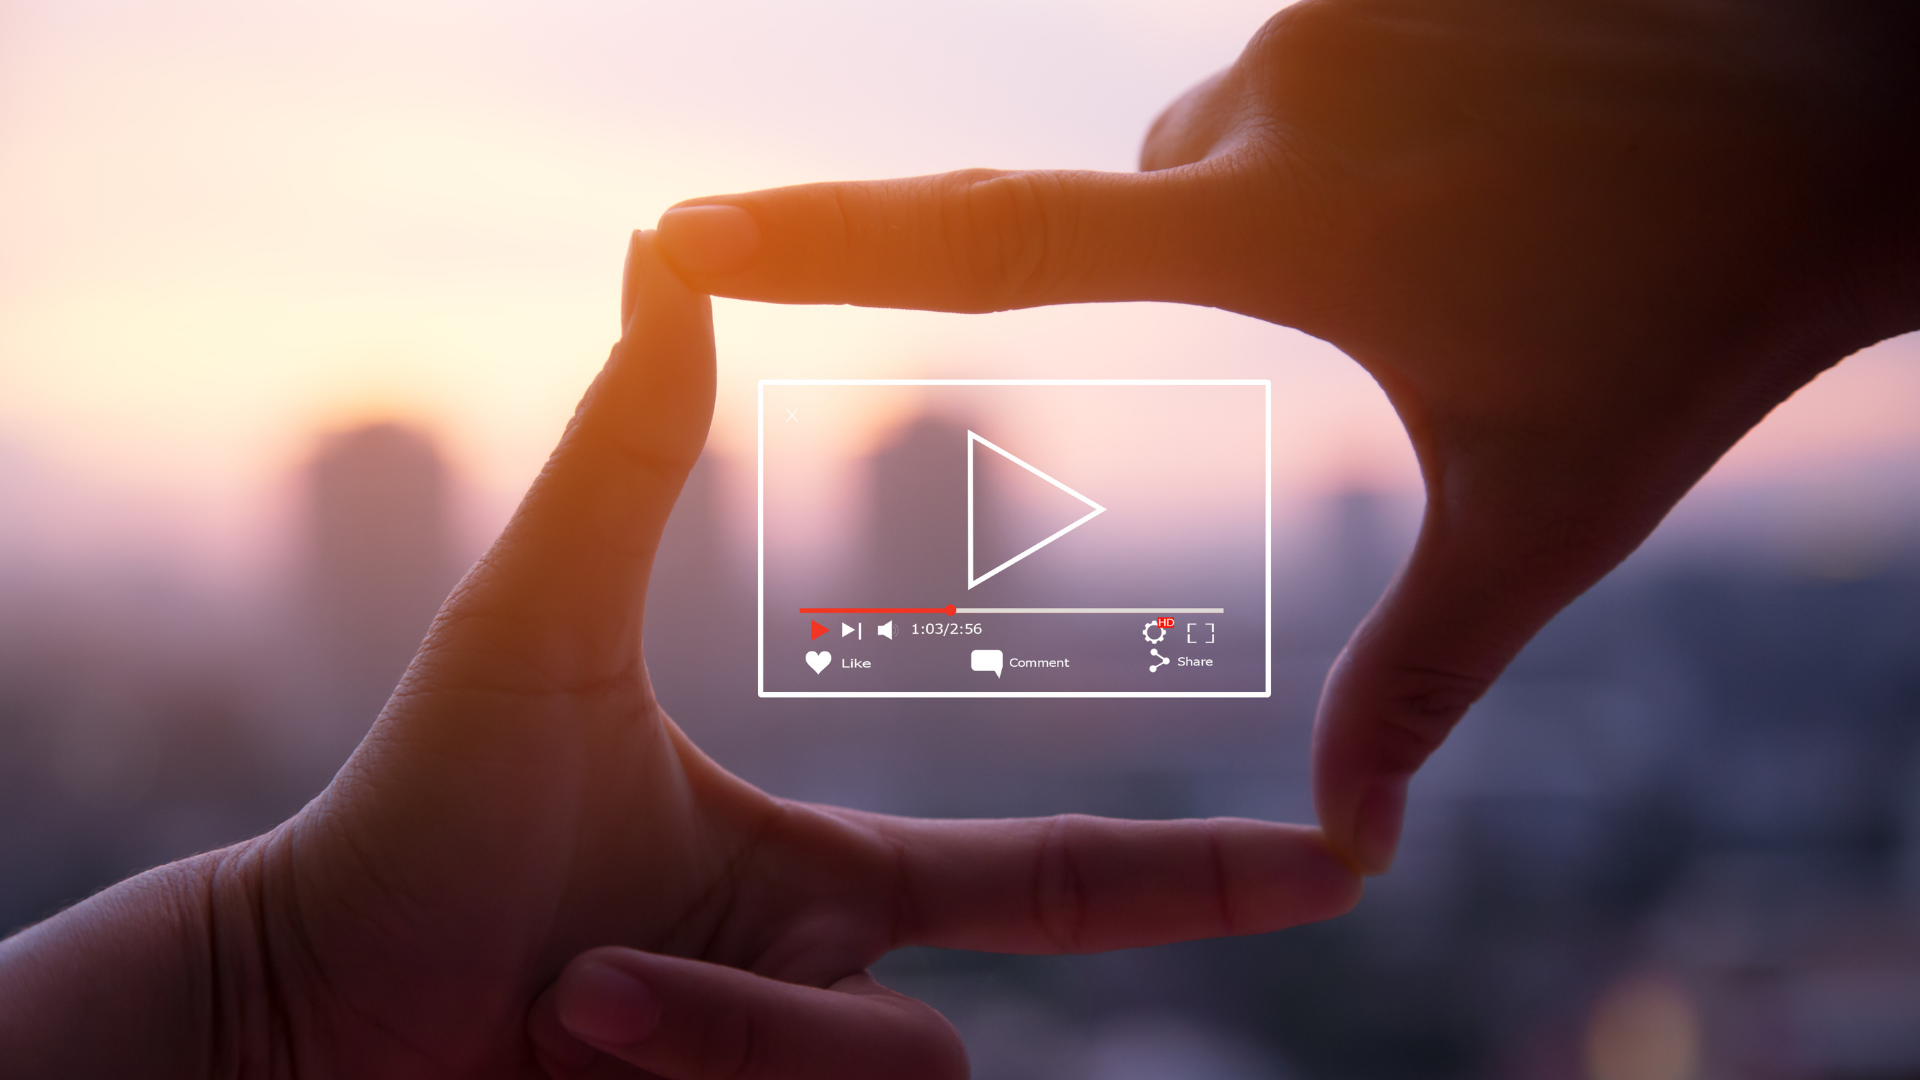 Hands surrounding drawing of play button in video